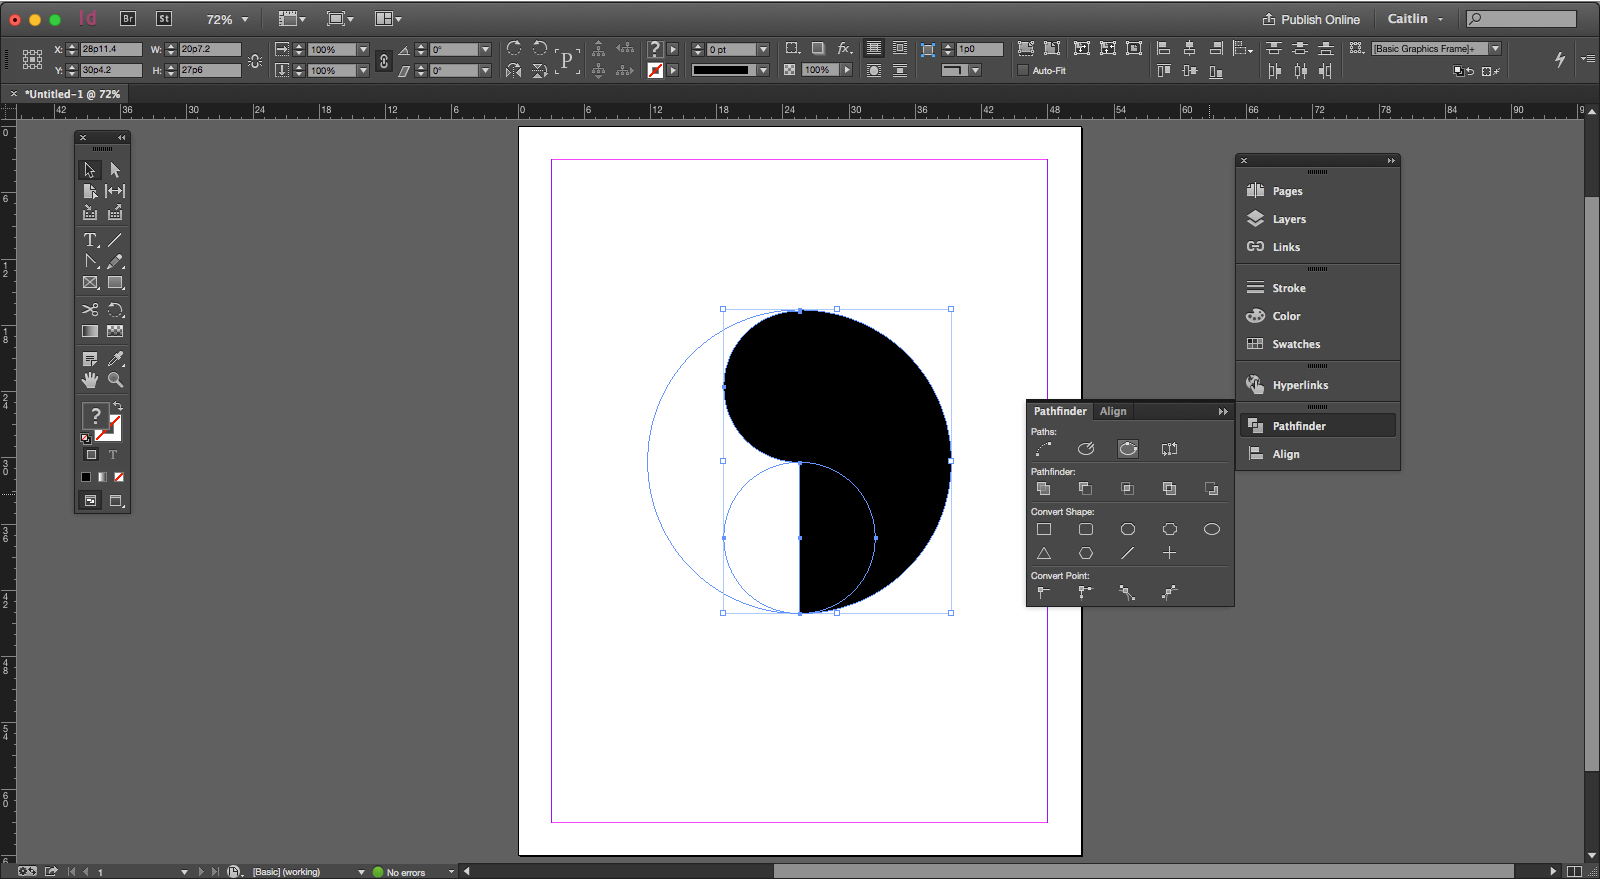 No matter how long you've been using a program, you can always learn new shortcuts. Pathfinder in InDesign saves a ton designing time — even after years of experience! Click through to see how.